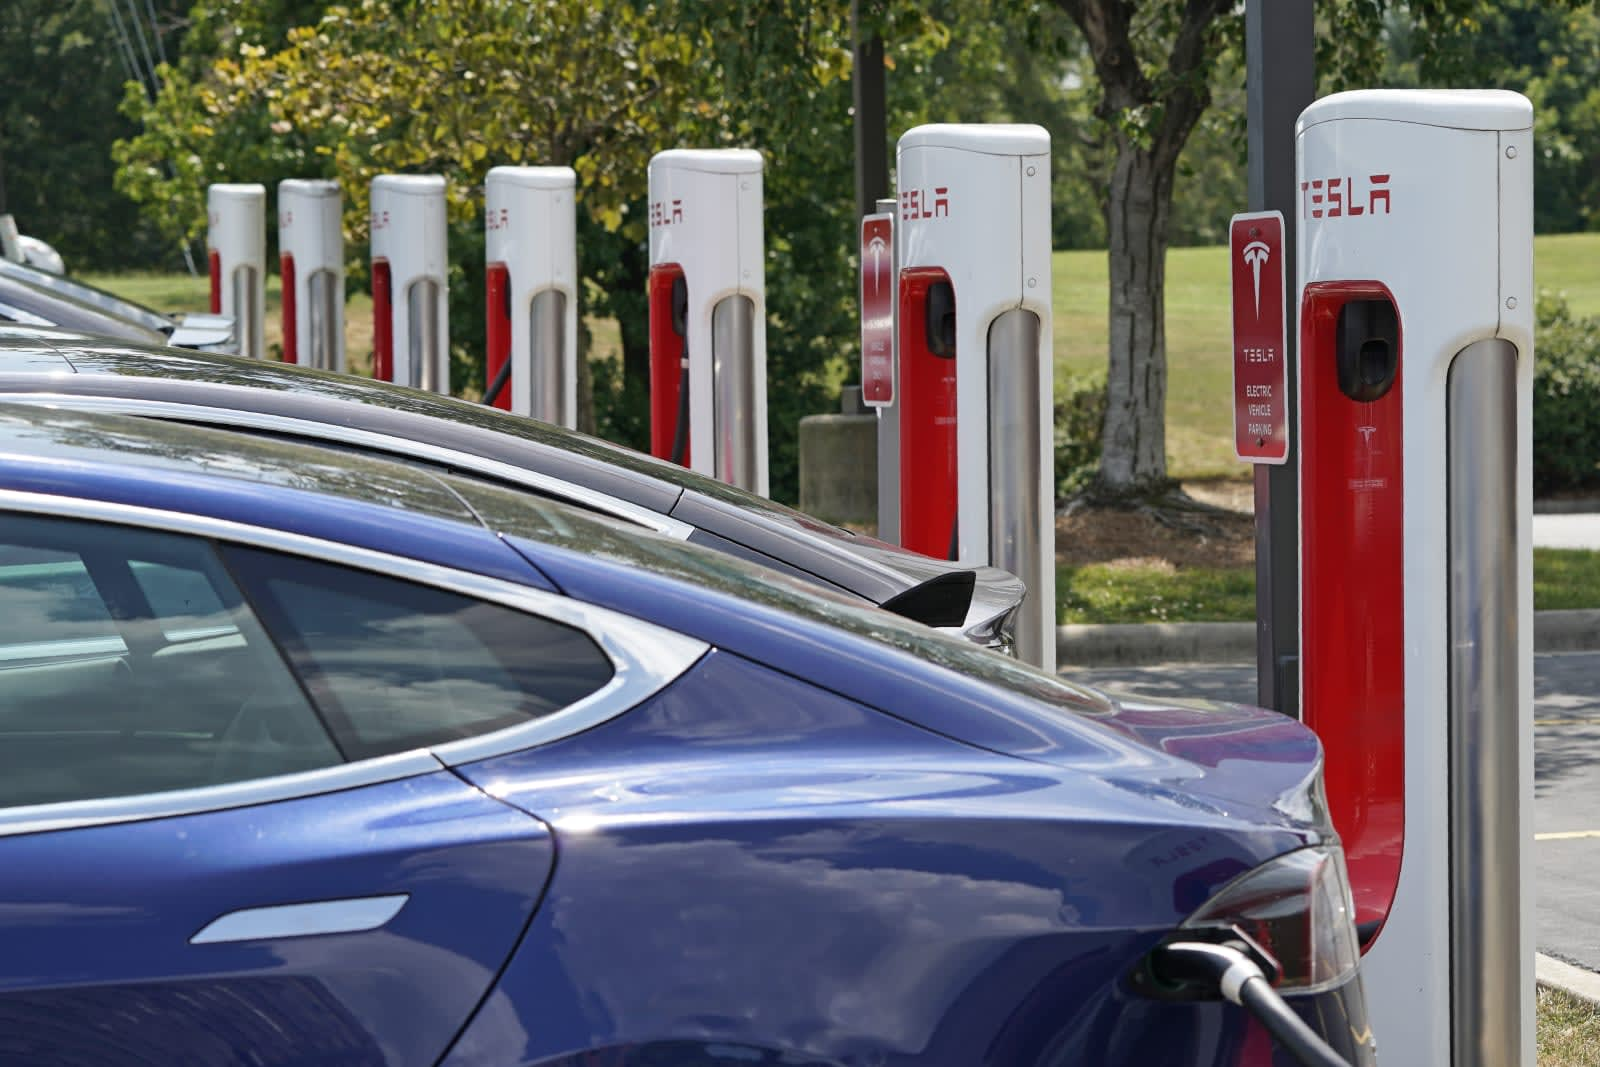 Tesla's first major V3 Supercharger rollout is taking place in Canada